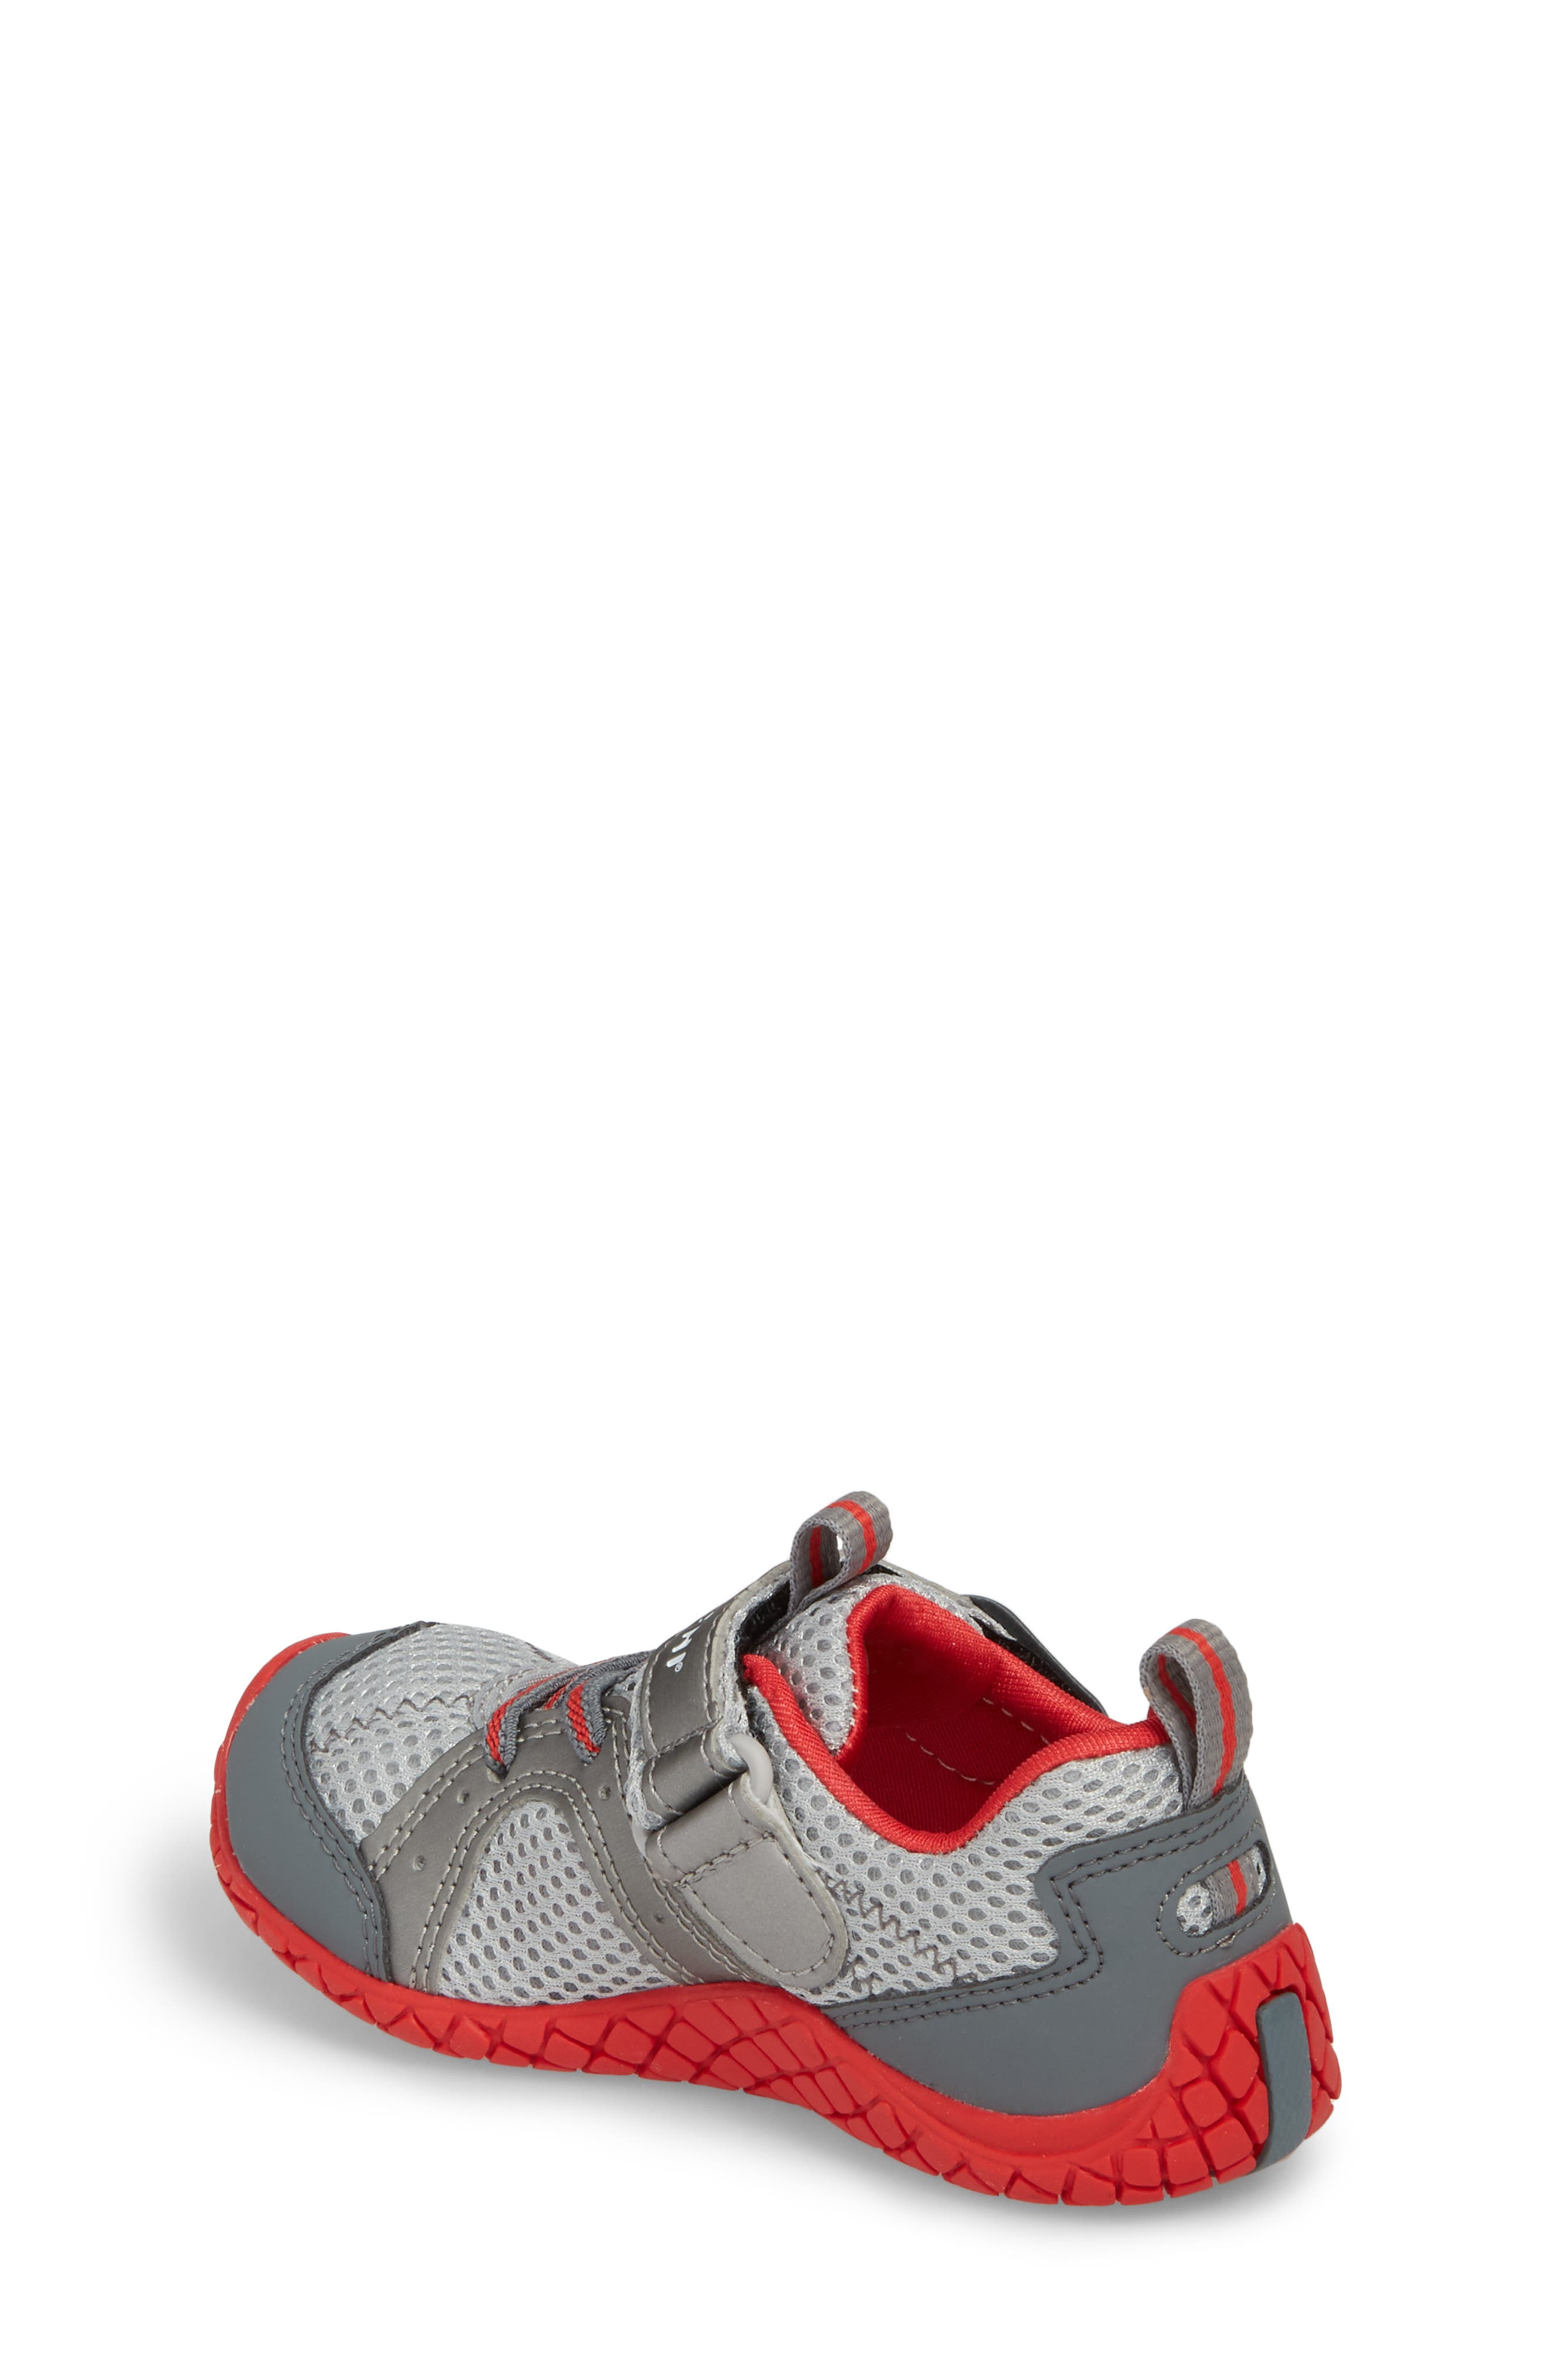 Marina Washable Sneaker,                             Alternate thumbnail 2, color,                             STEEL/ RED